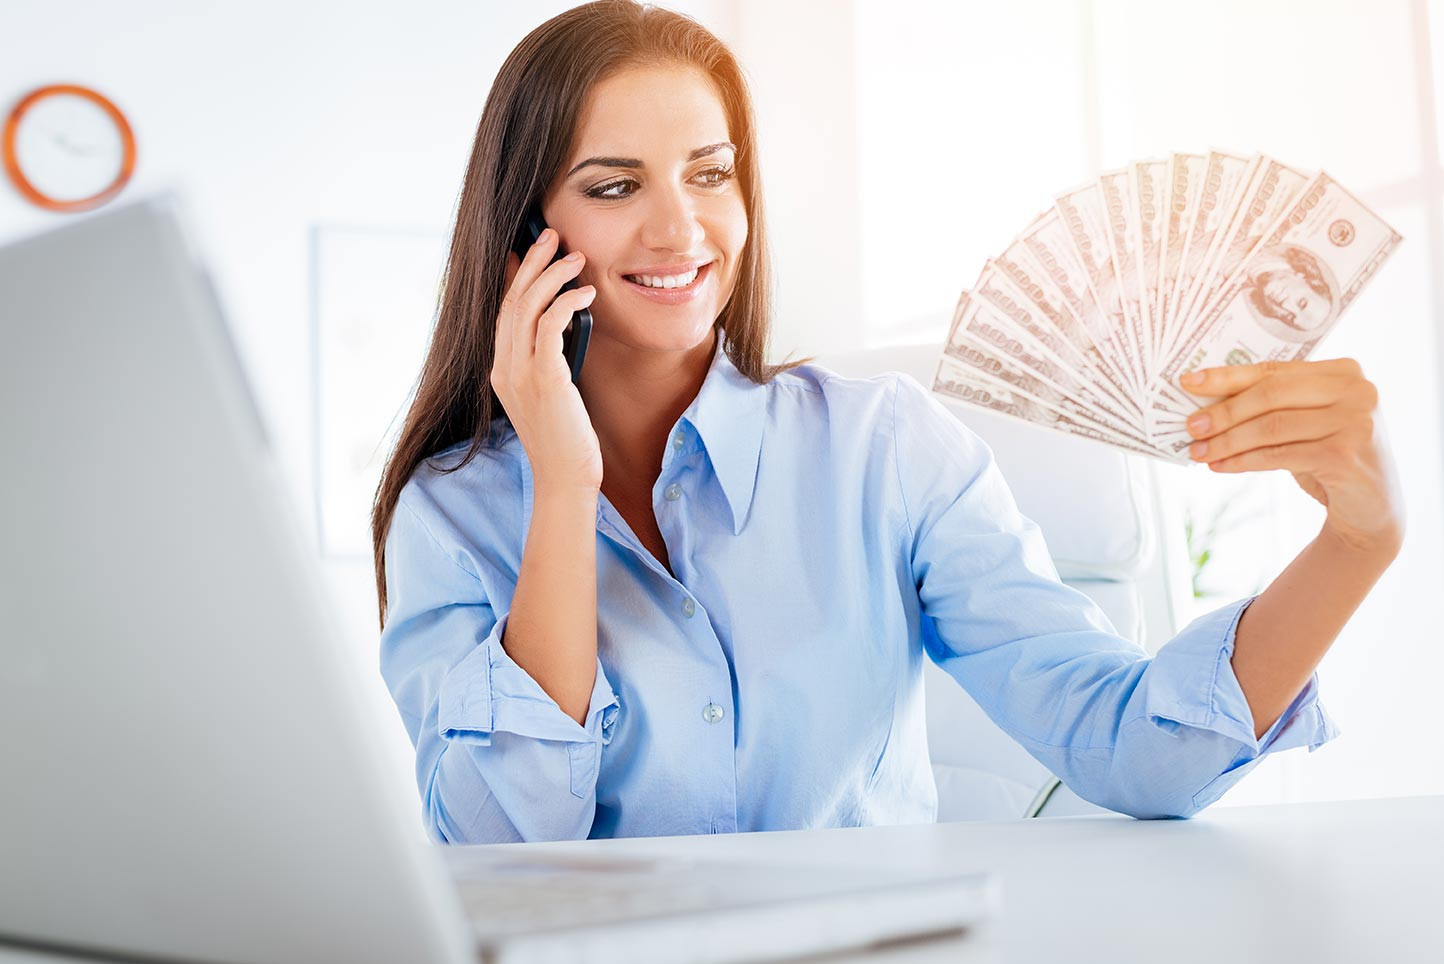 One phone call can result in extra cash in your pocket